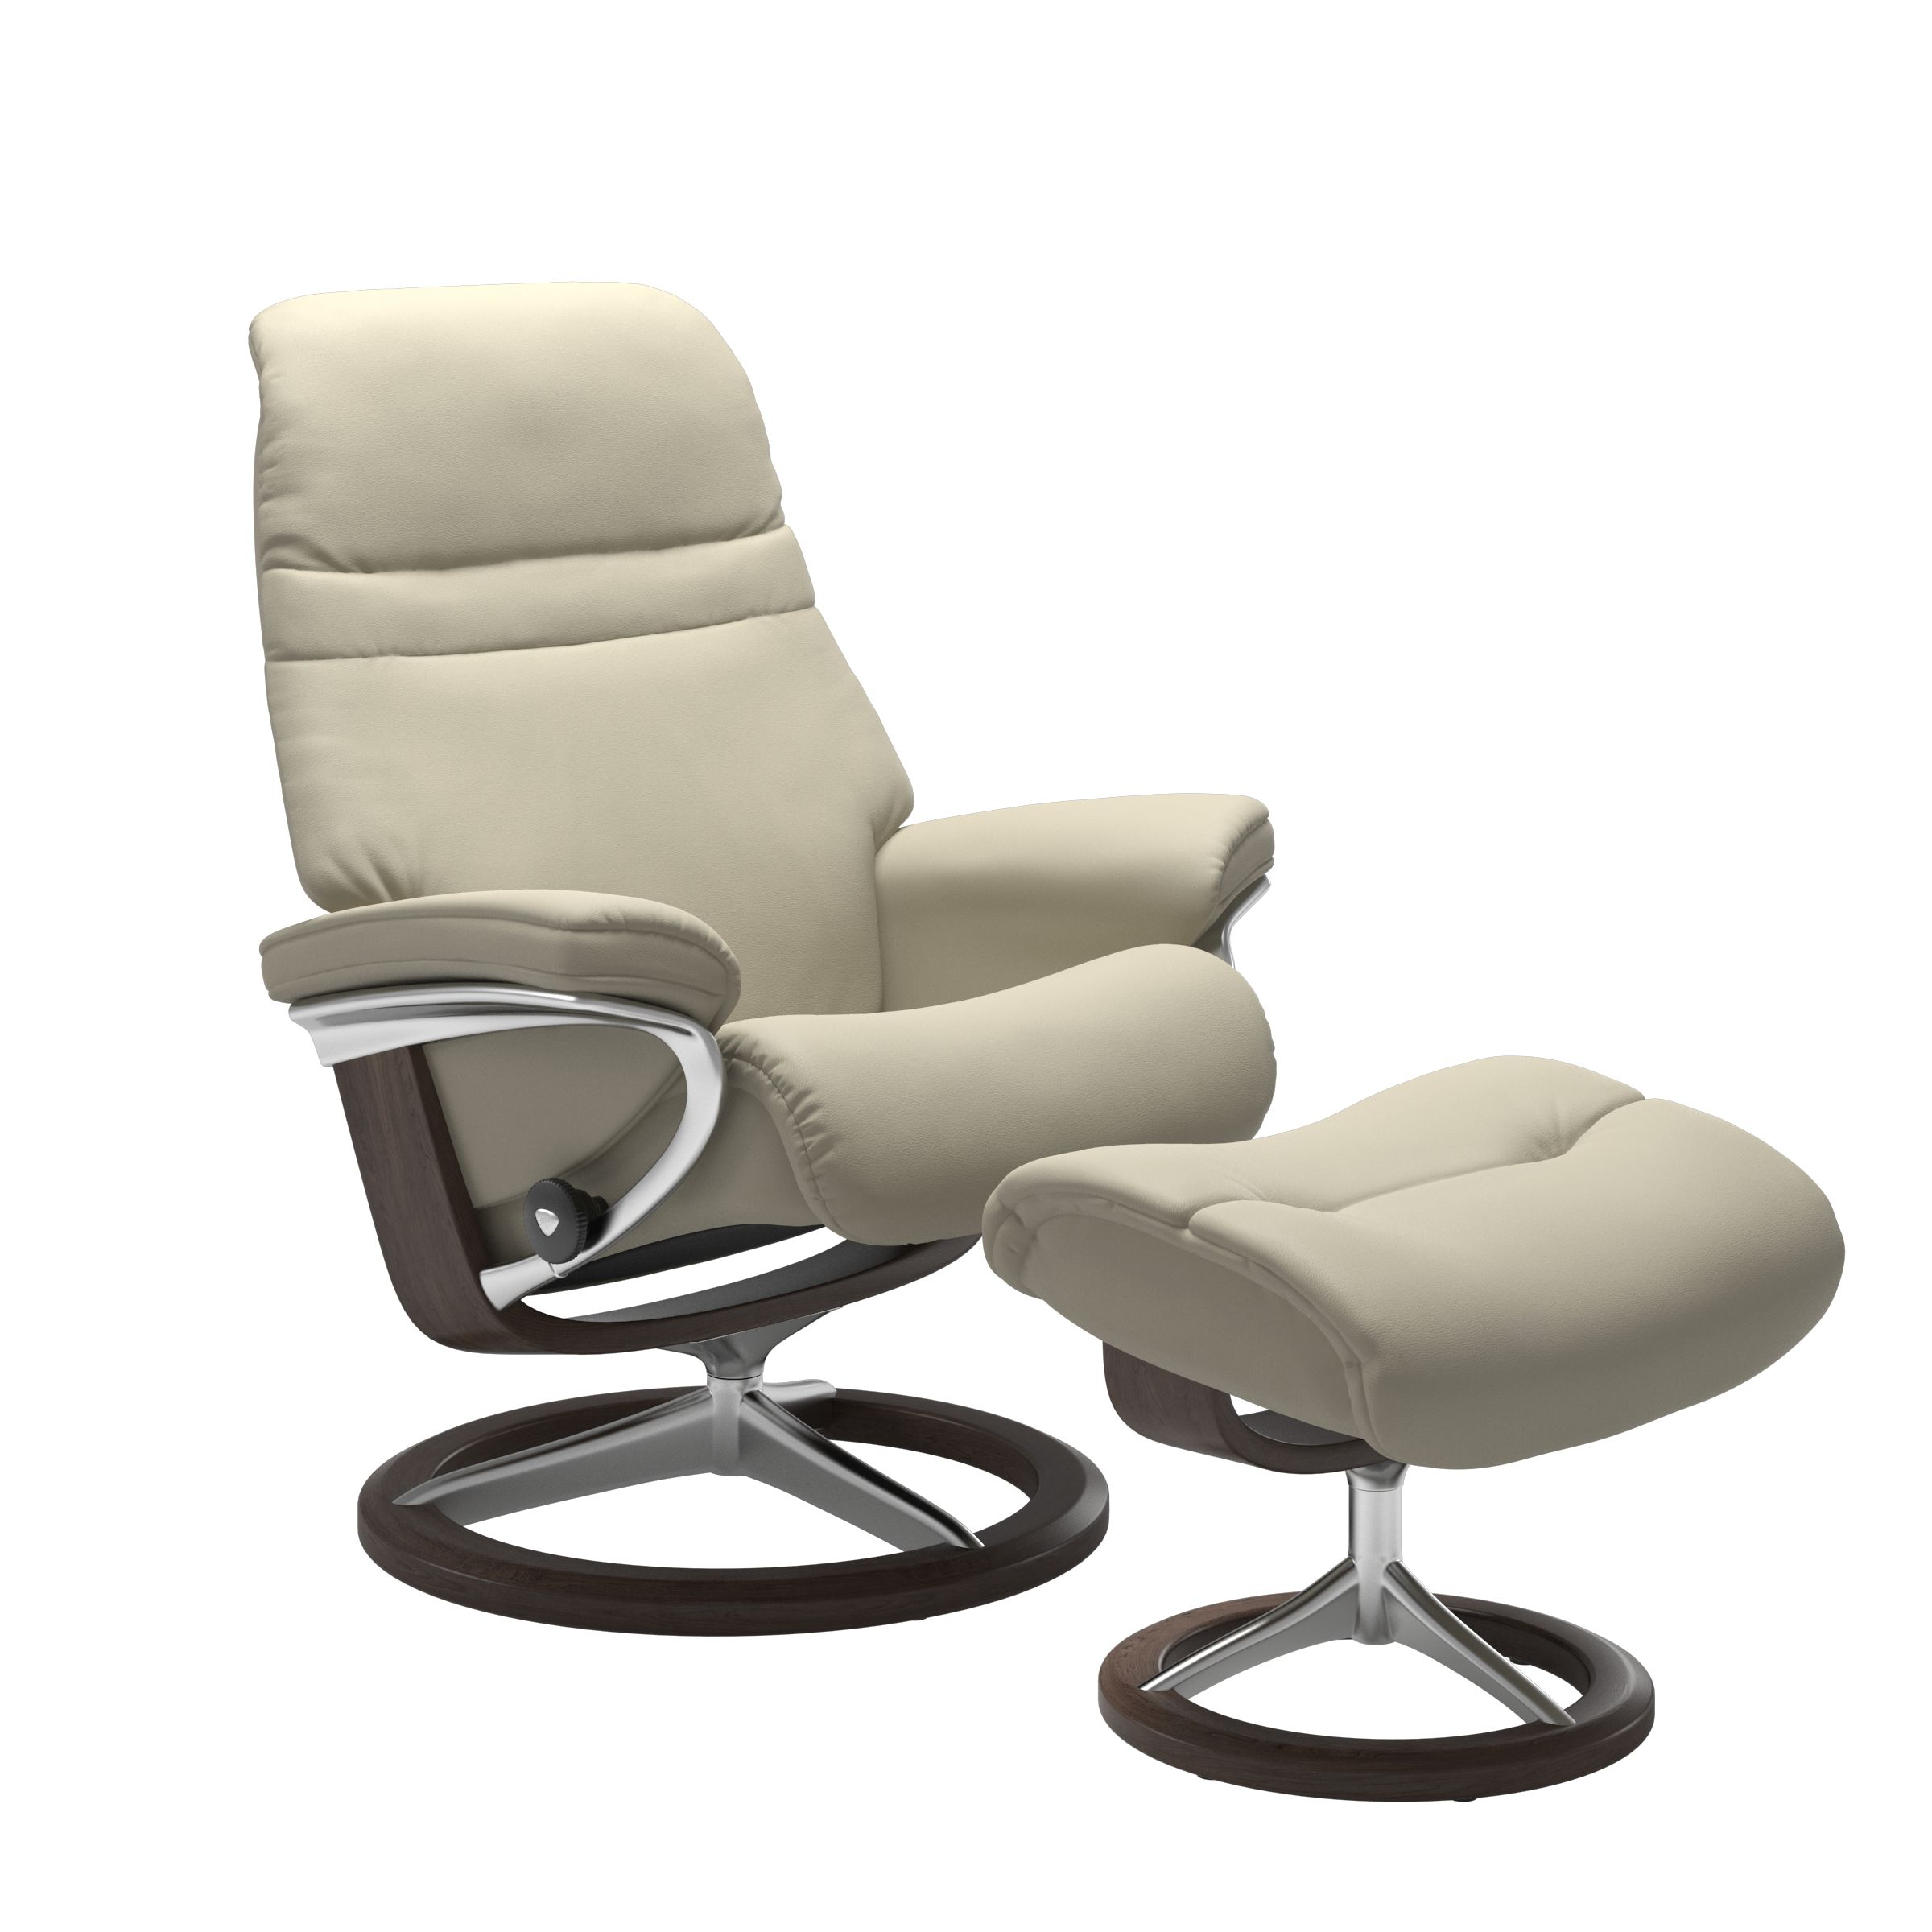 Stressless Sessel Sunrise.html Stressless Sunrise Recliners